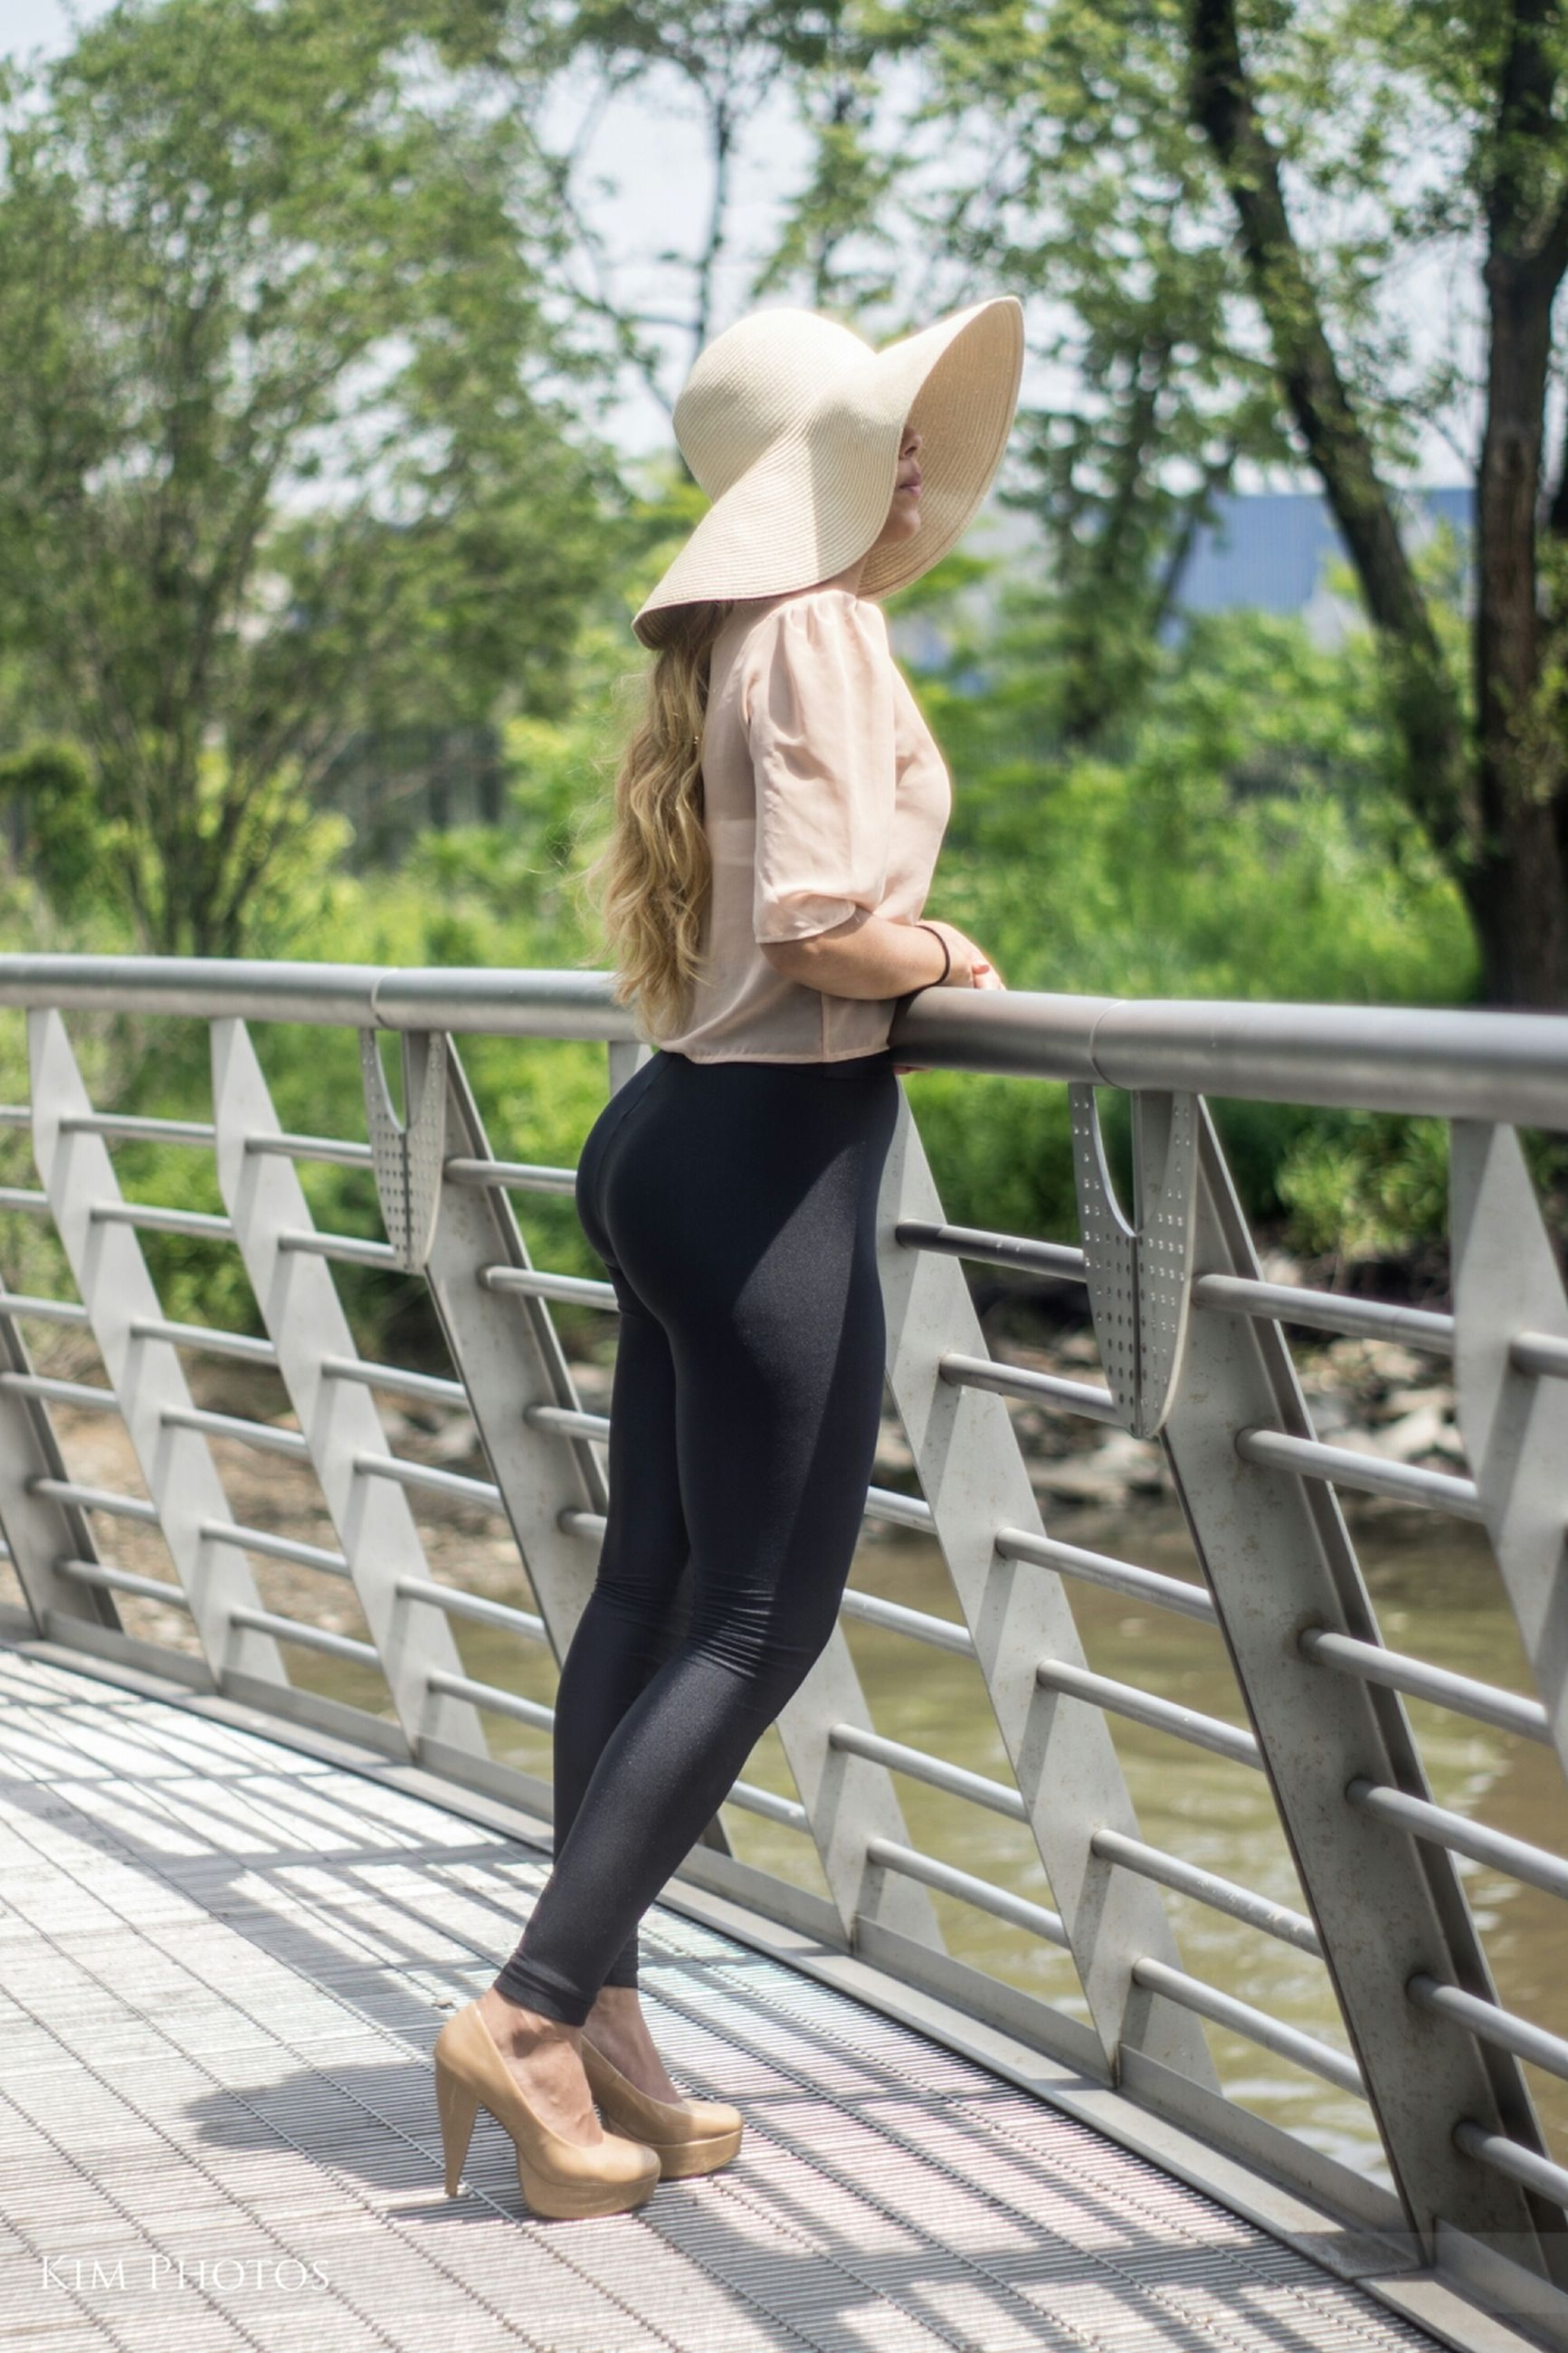 lifestyles, standing, tree, casual clothing, leisure activity, young adult, full length, young women, person, rear view, dress, long hair, railing, three quarter length, sunlight, fashion, day, low section